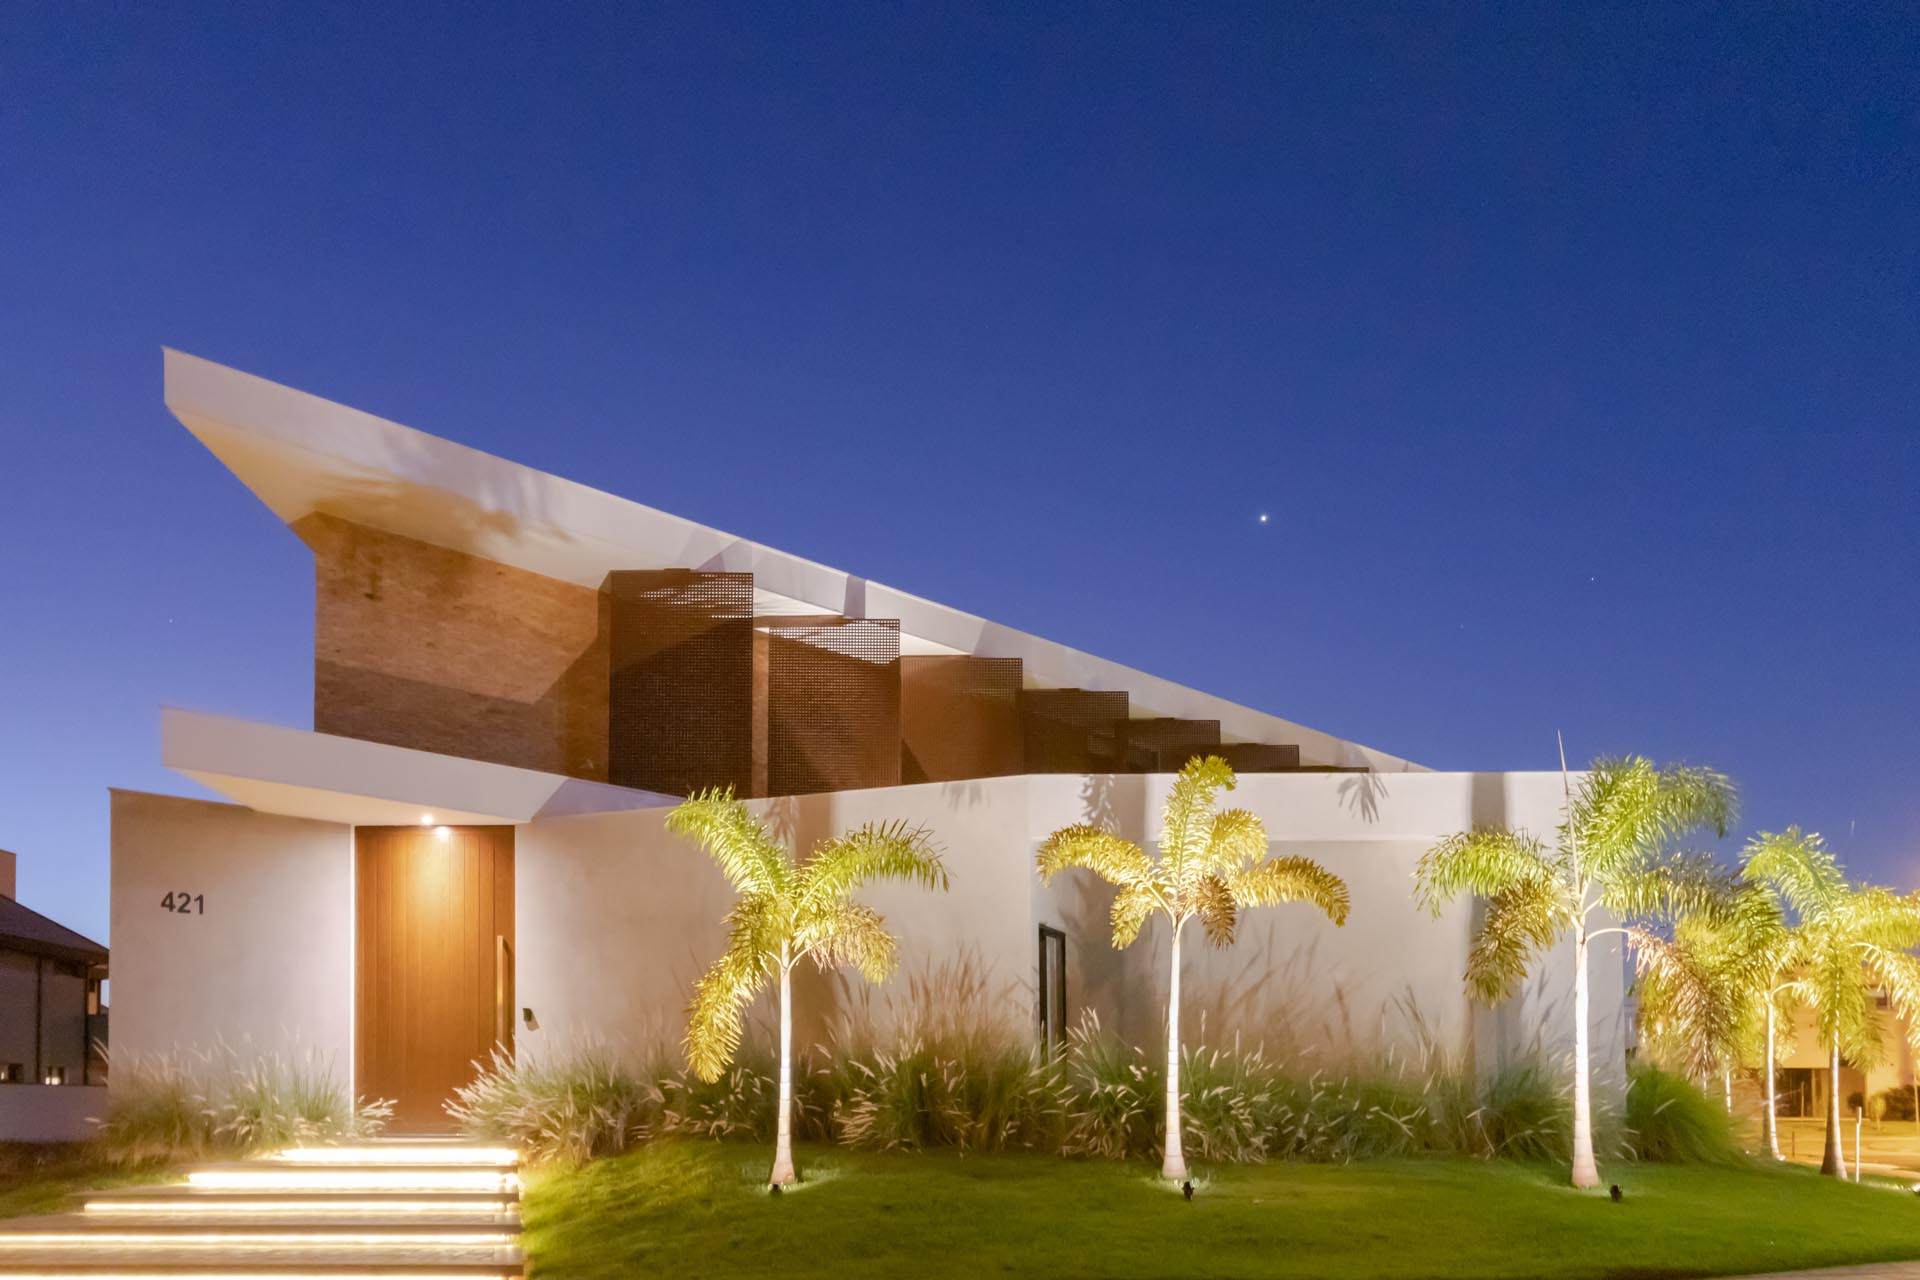 This modern home is located on an irregular corner lot, with the curb appeal showcasing steps with hidden lighting, and uplighting the palm trees.